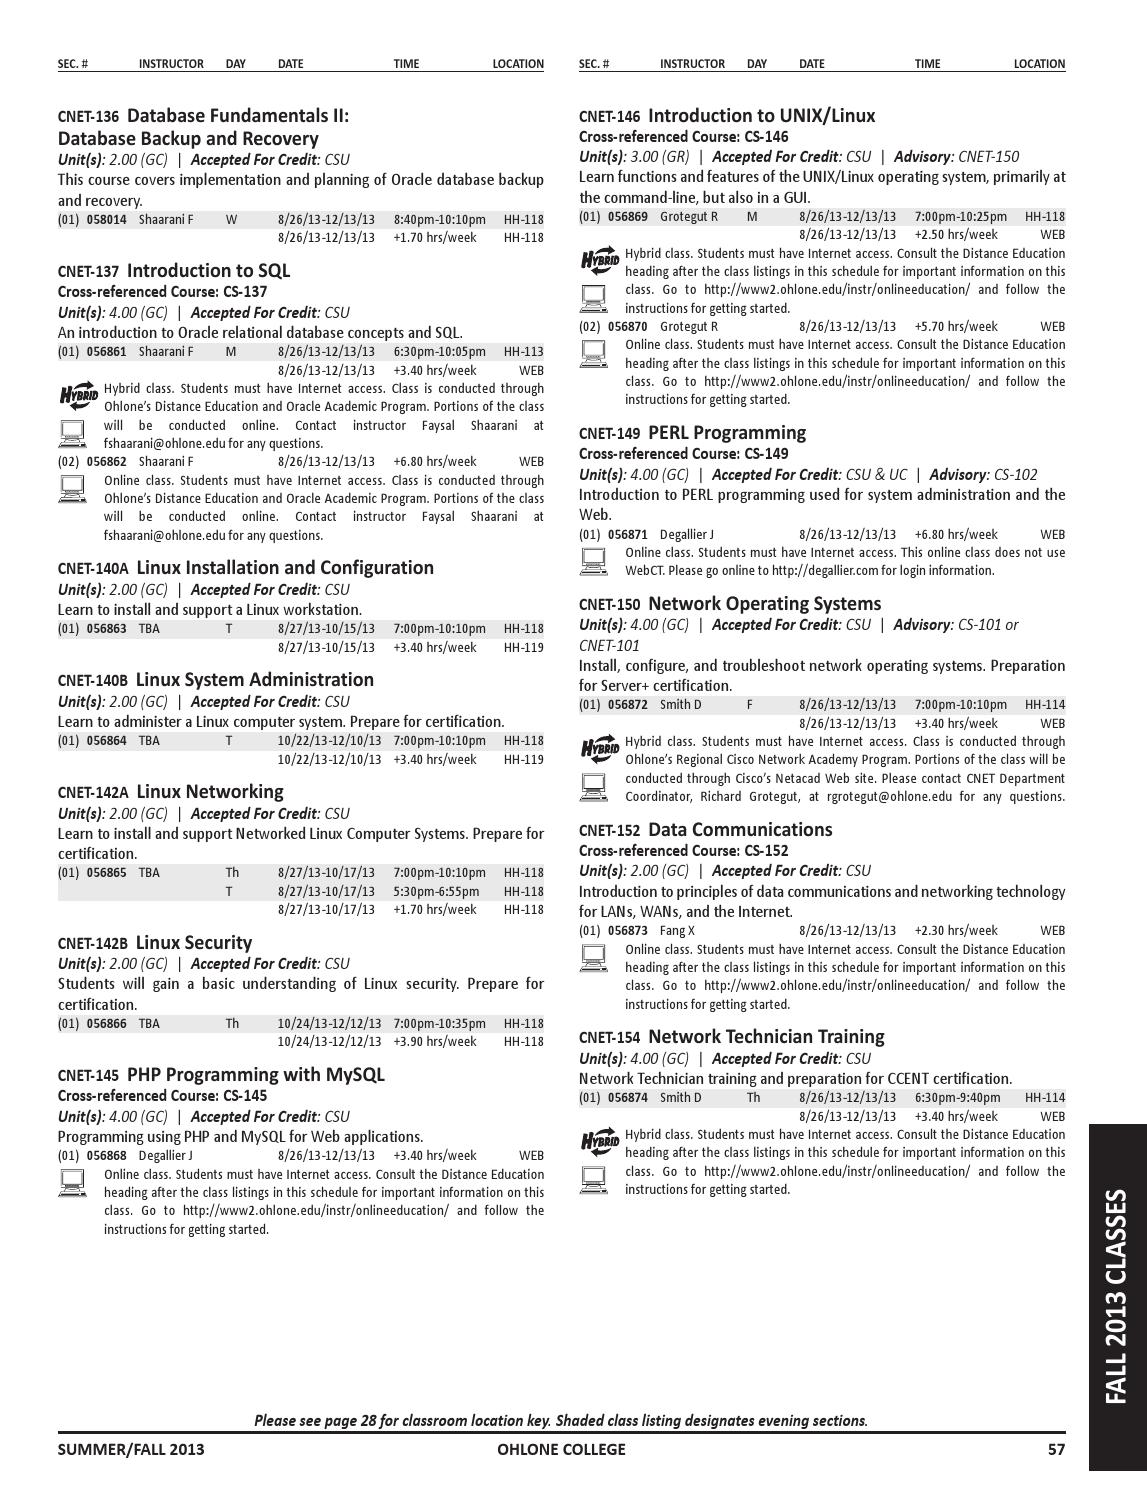 Summer/Fall 2013 Ohlone College Class Schedule by Ohlone